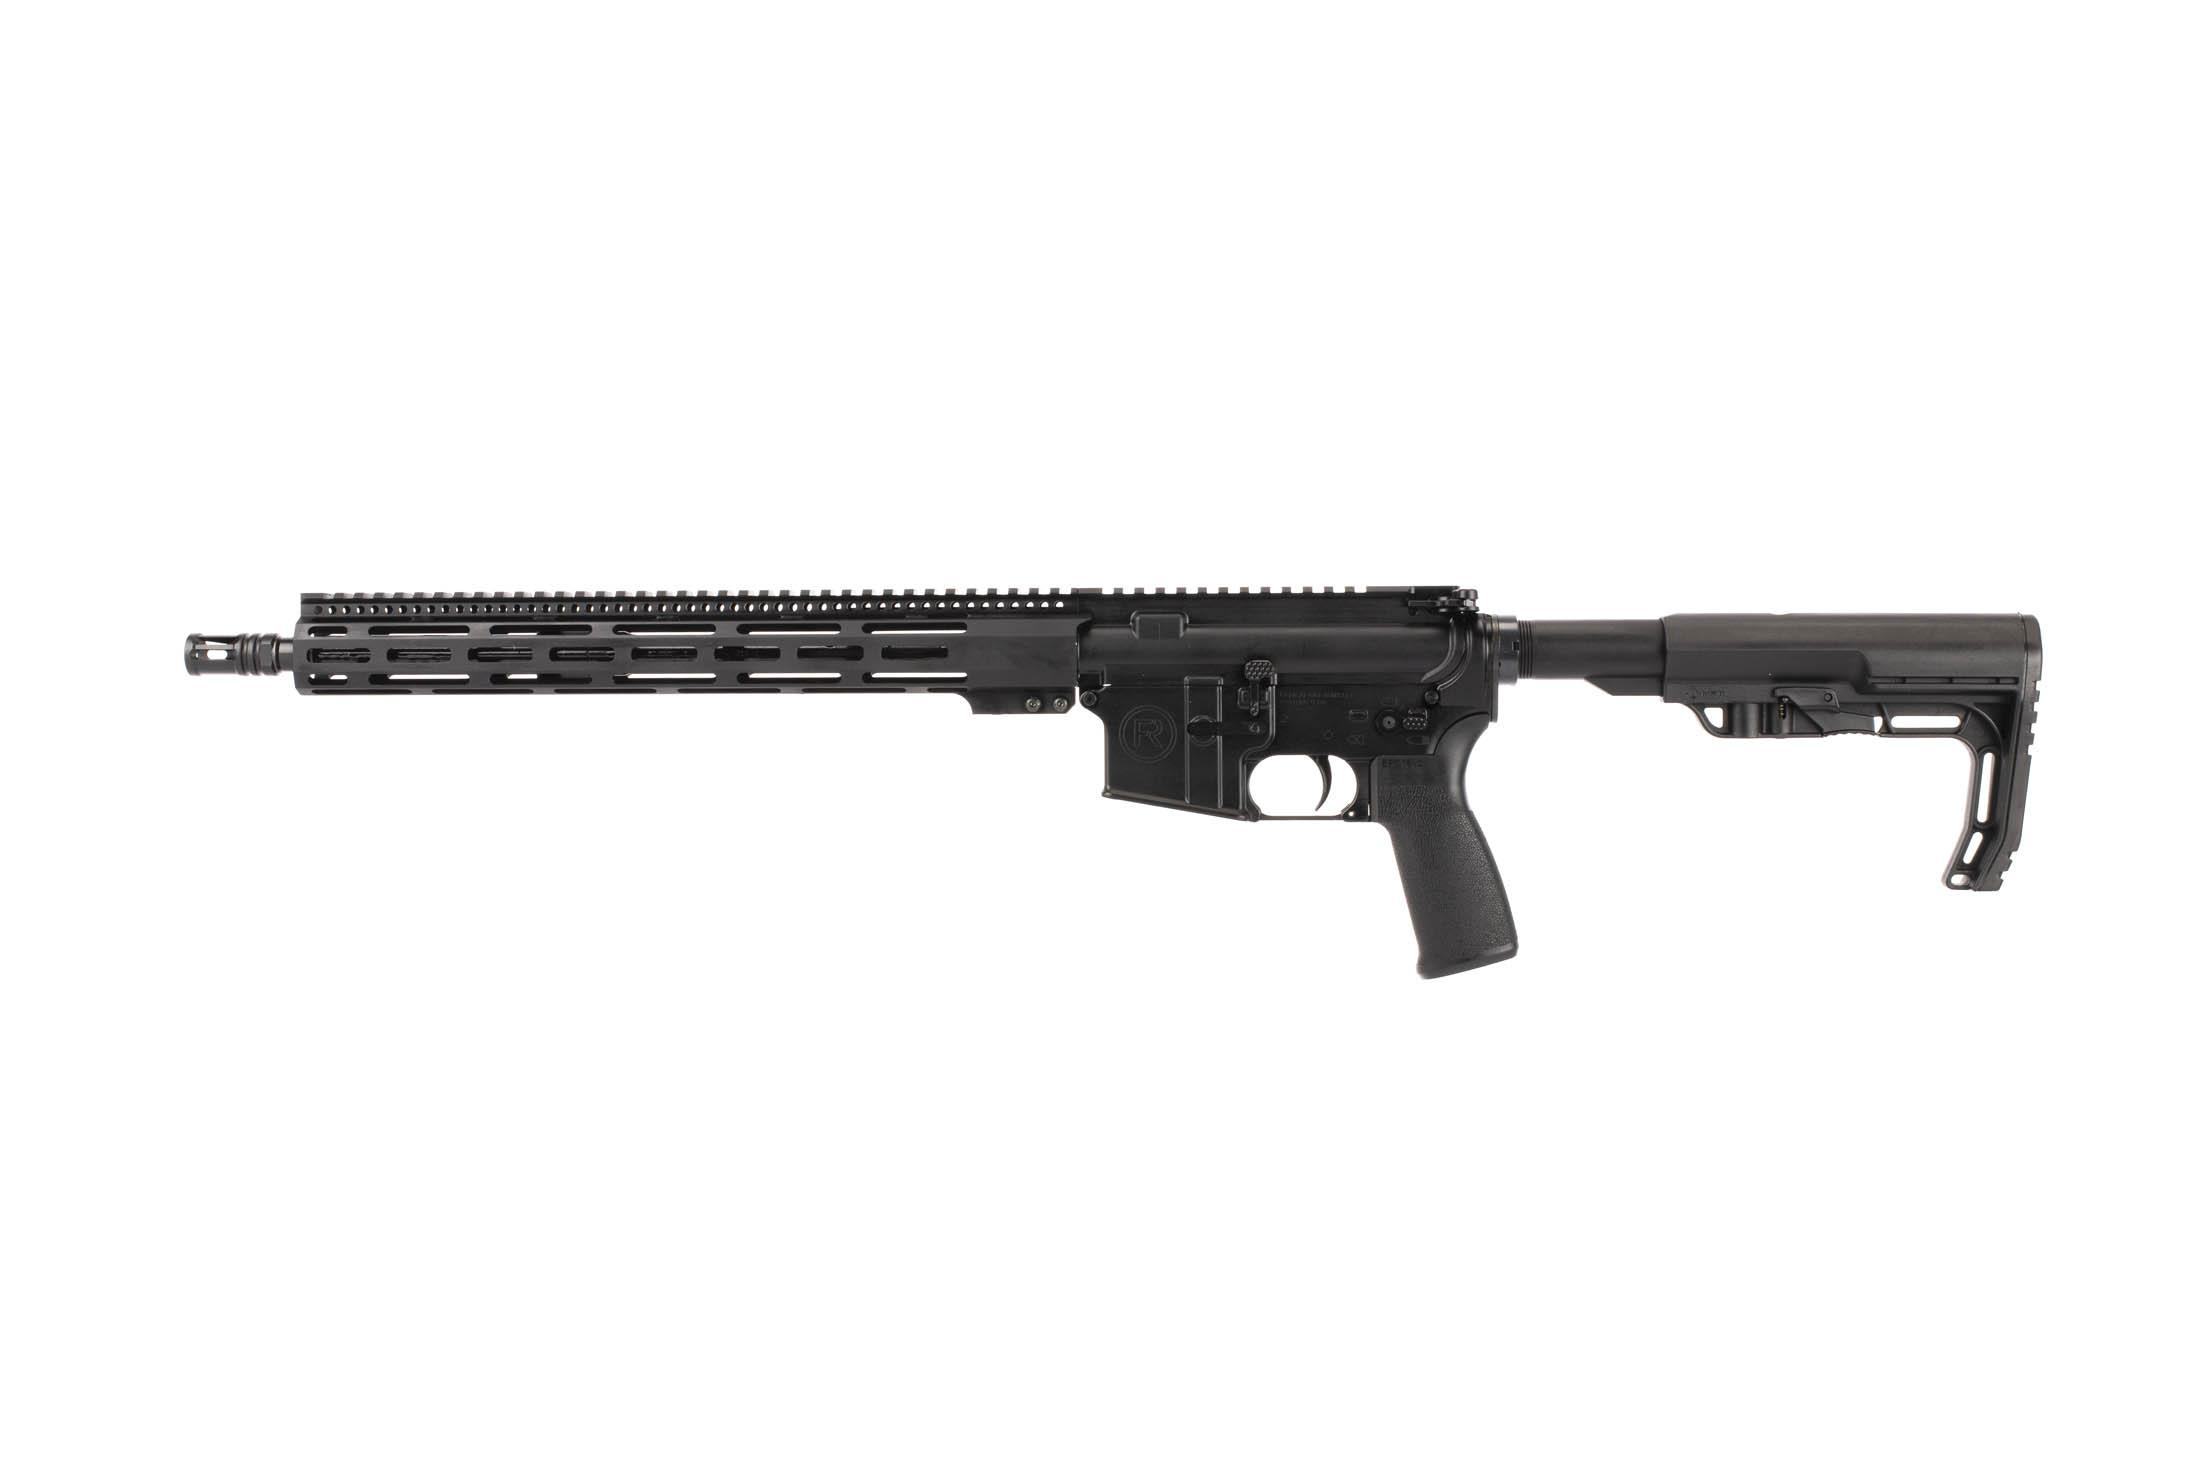 Radical Firearms 16in AR-15 in 5.56 NATO with soft shooting mid-length gas system